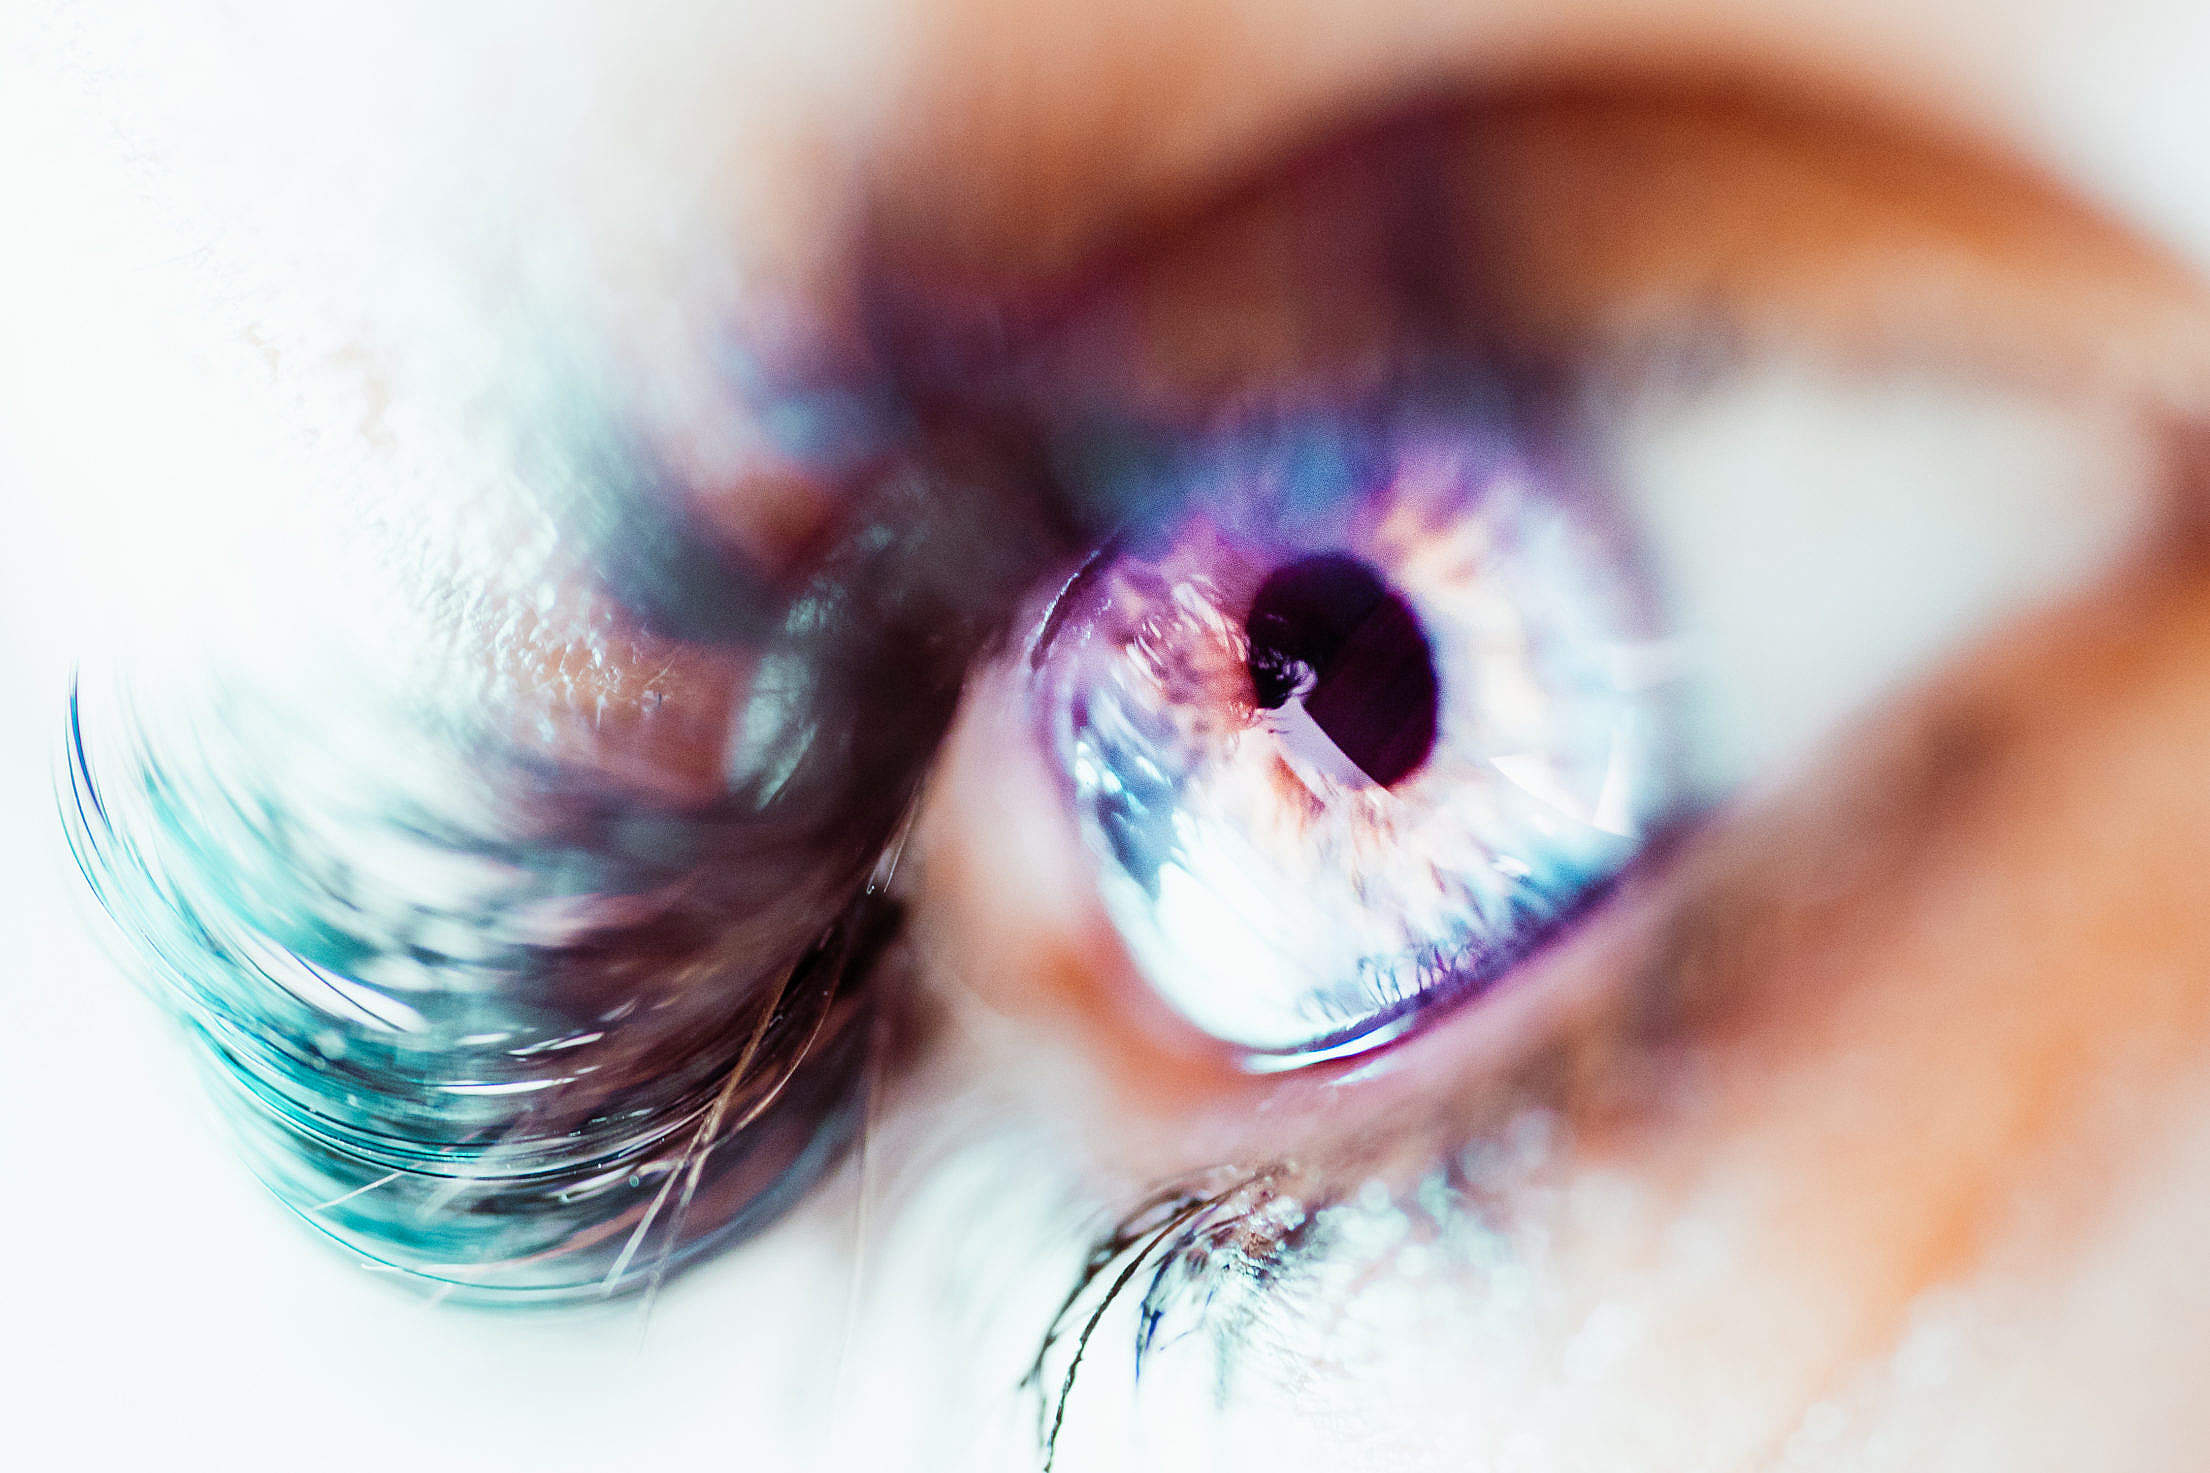 Download Colorful Macro Image of Human Eye Free Stock Photo